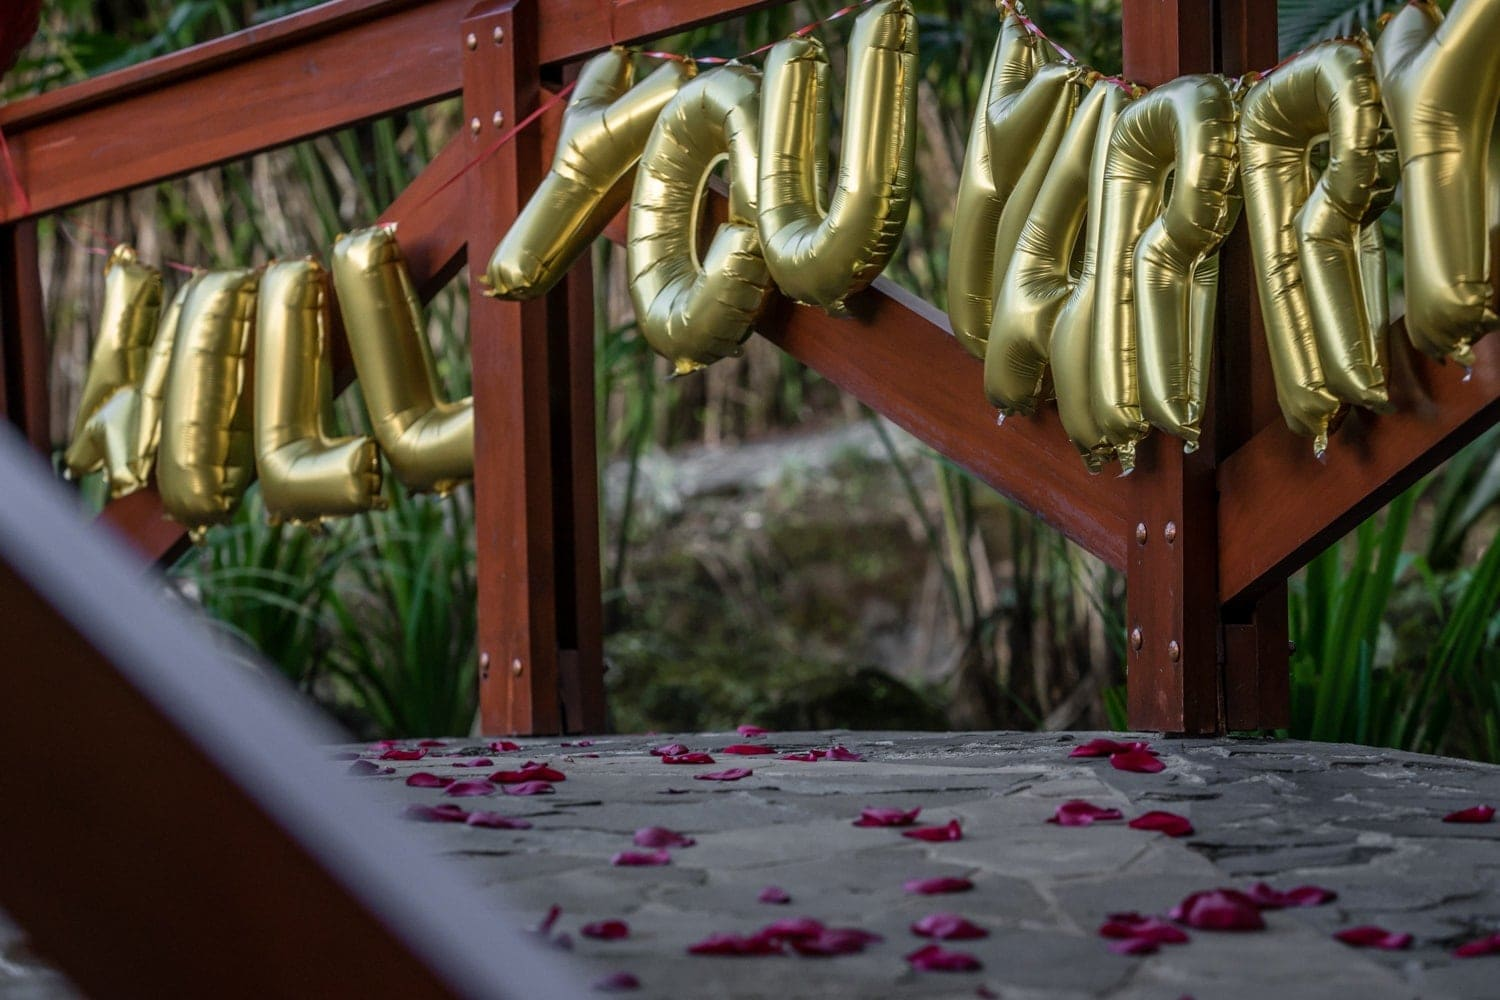 Decorations and flower petals on bridge for dream Costa Rica engagement